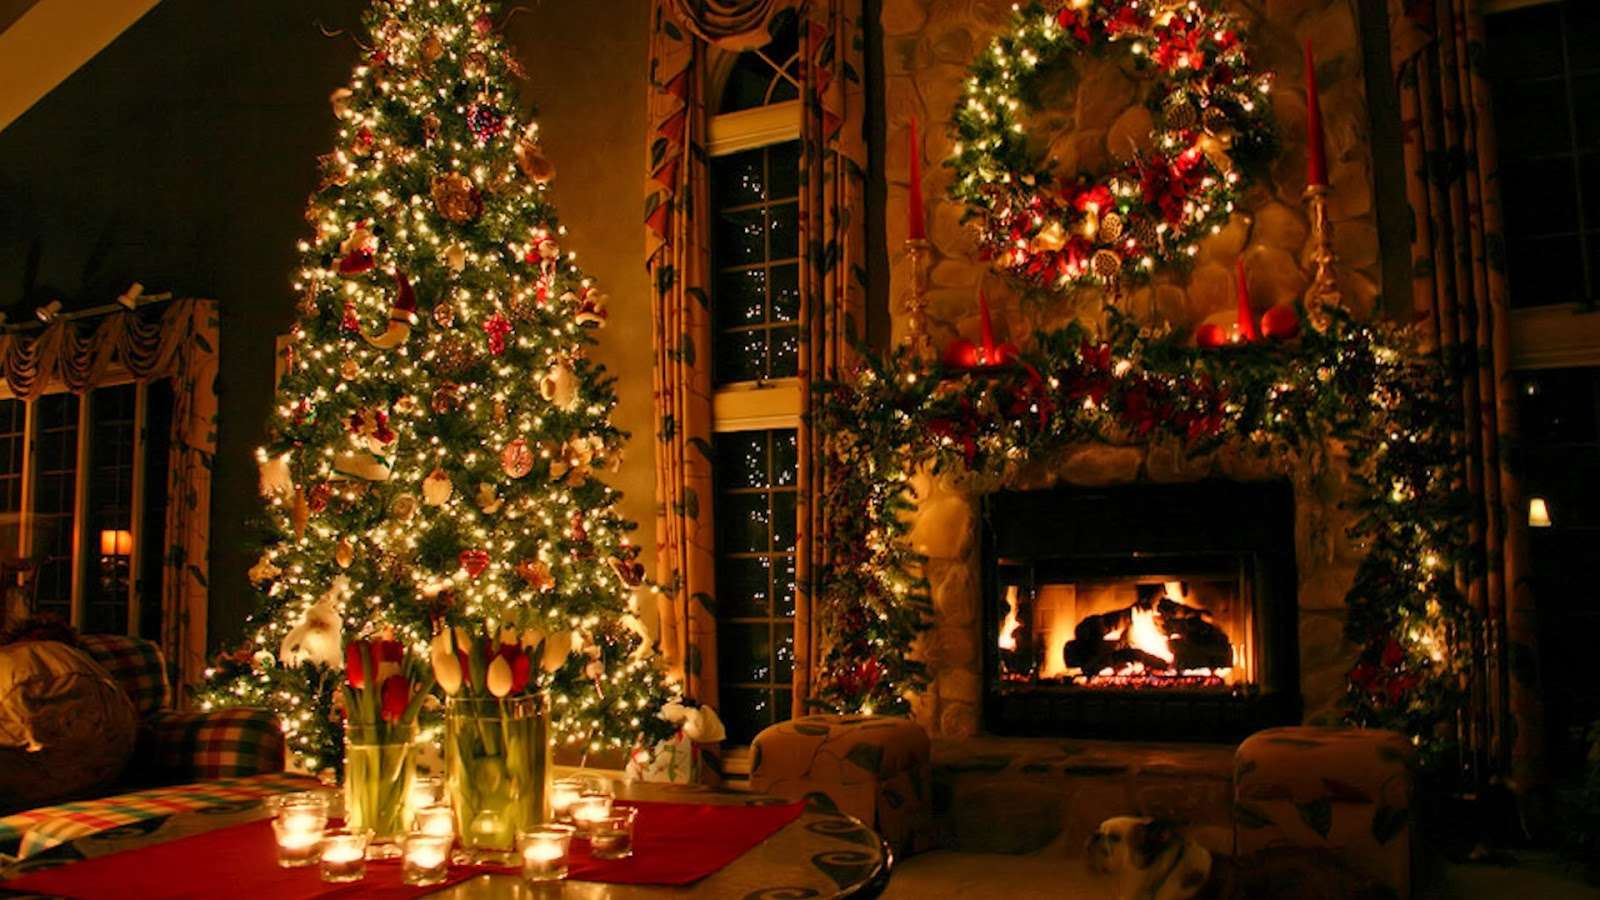 Get decorative this christmas mozaico blog for Christmas decorations images